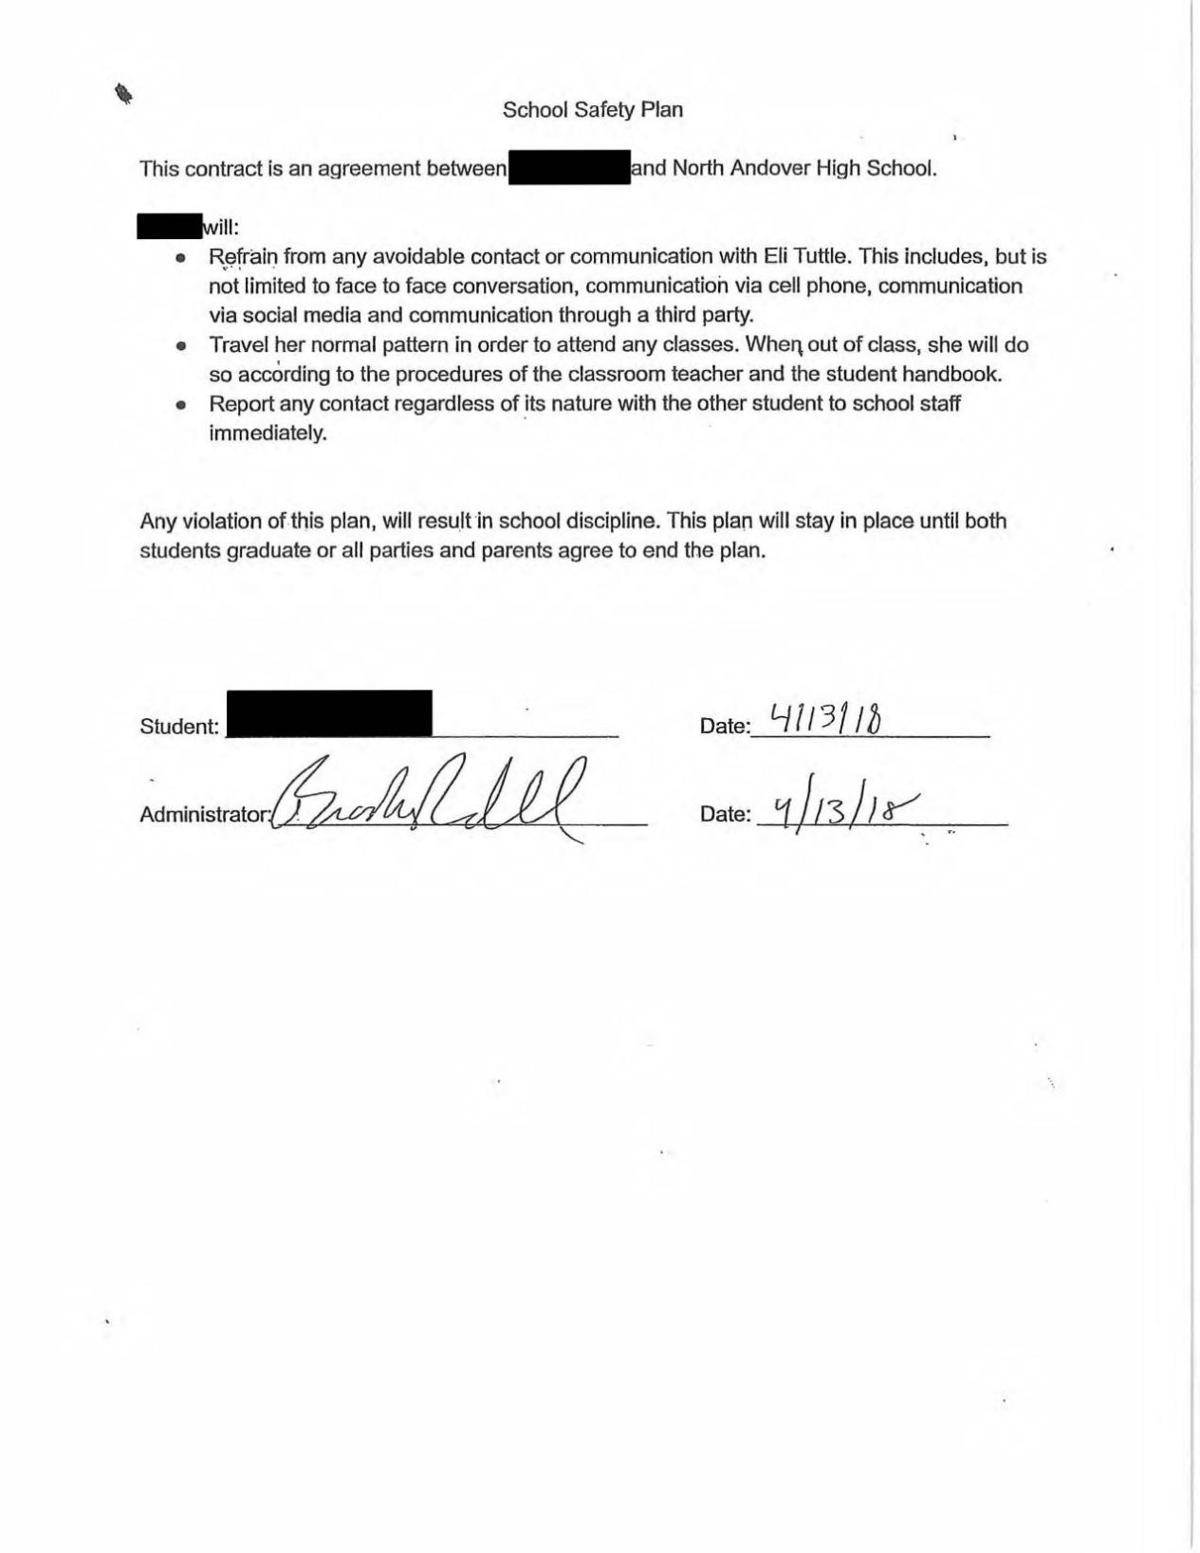 School made sexual assault victim sign a contract that she'd